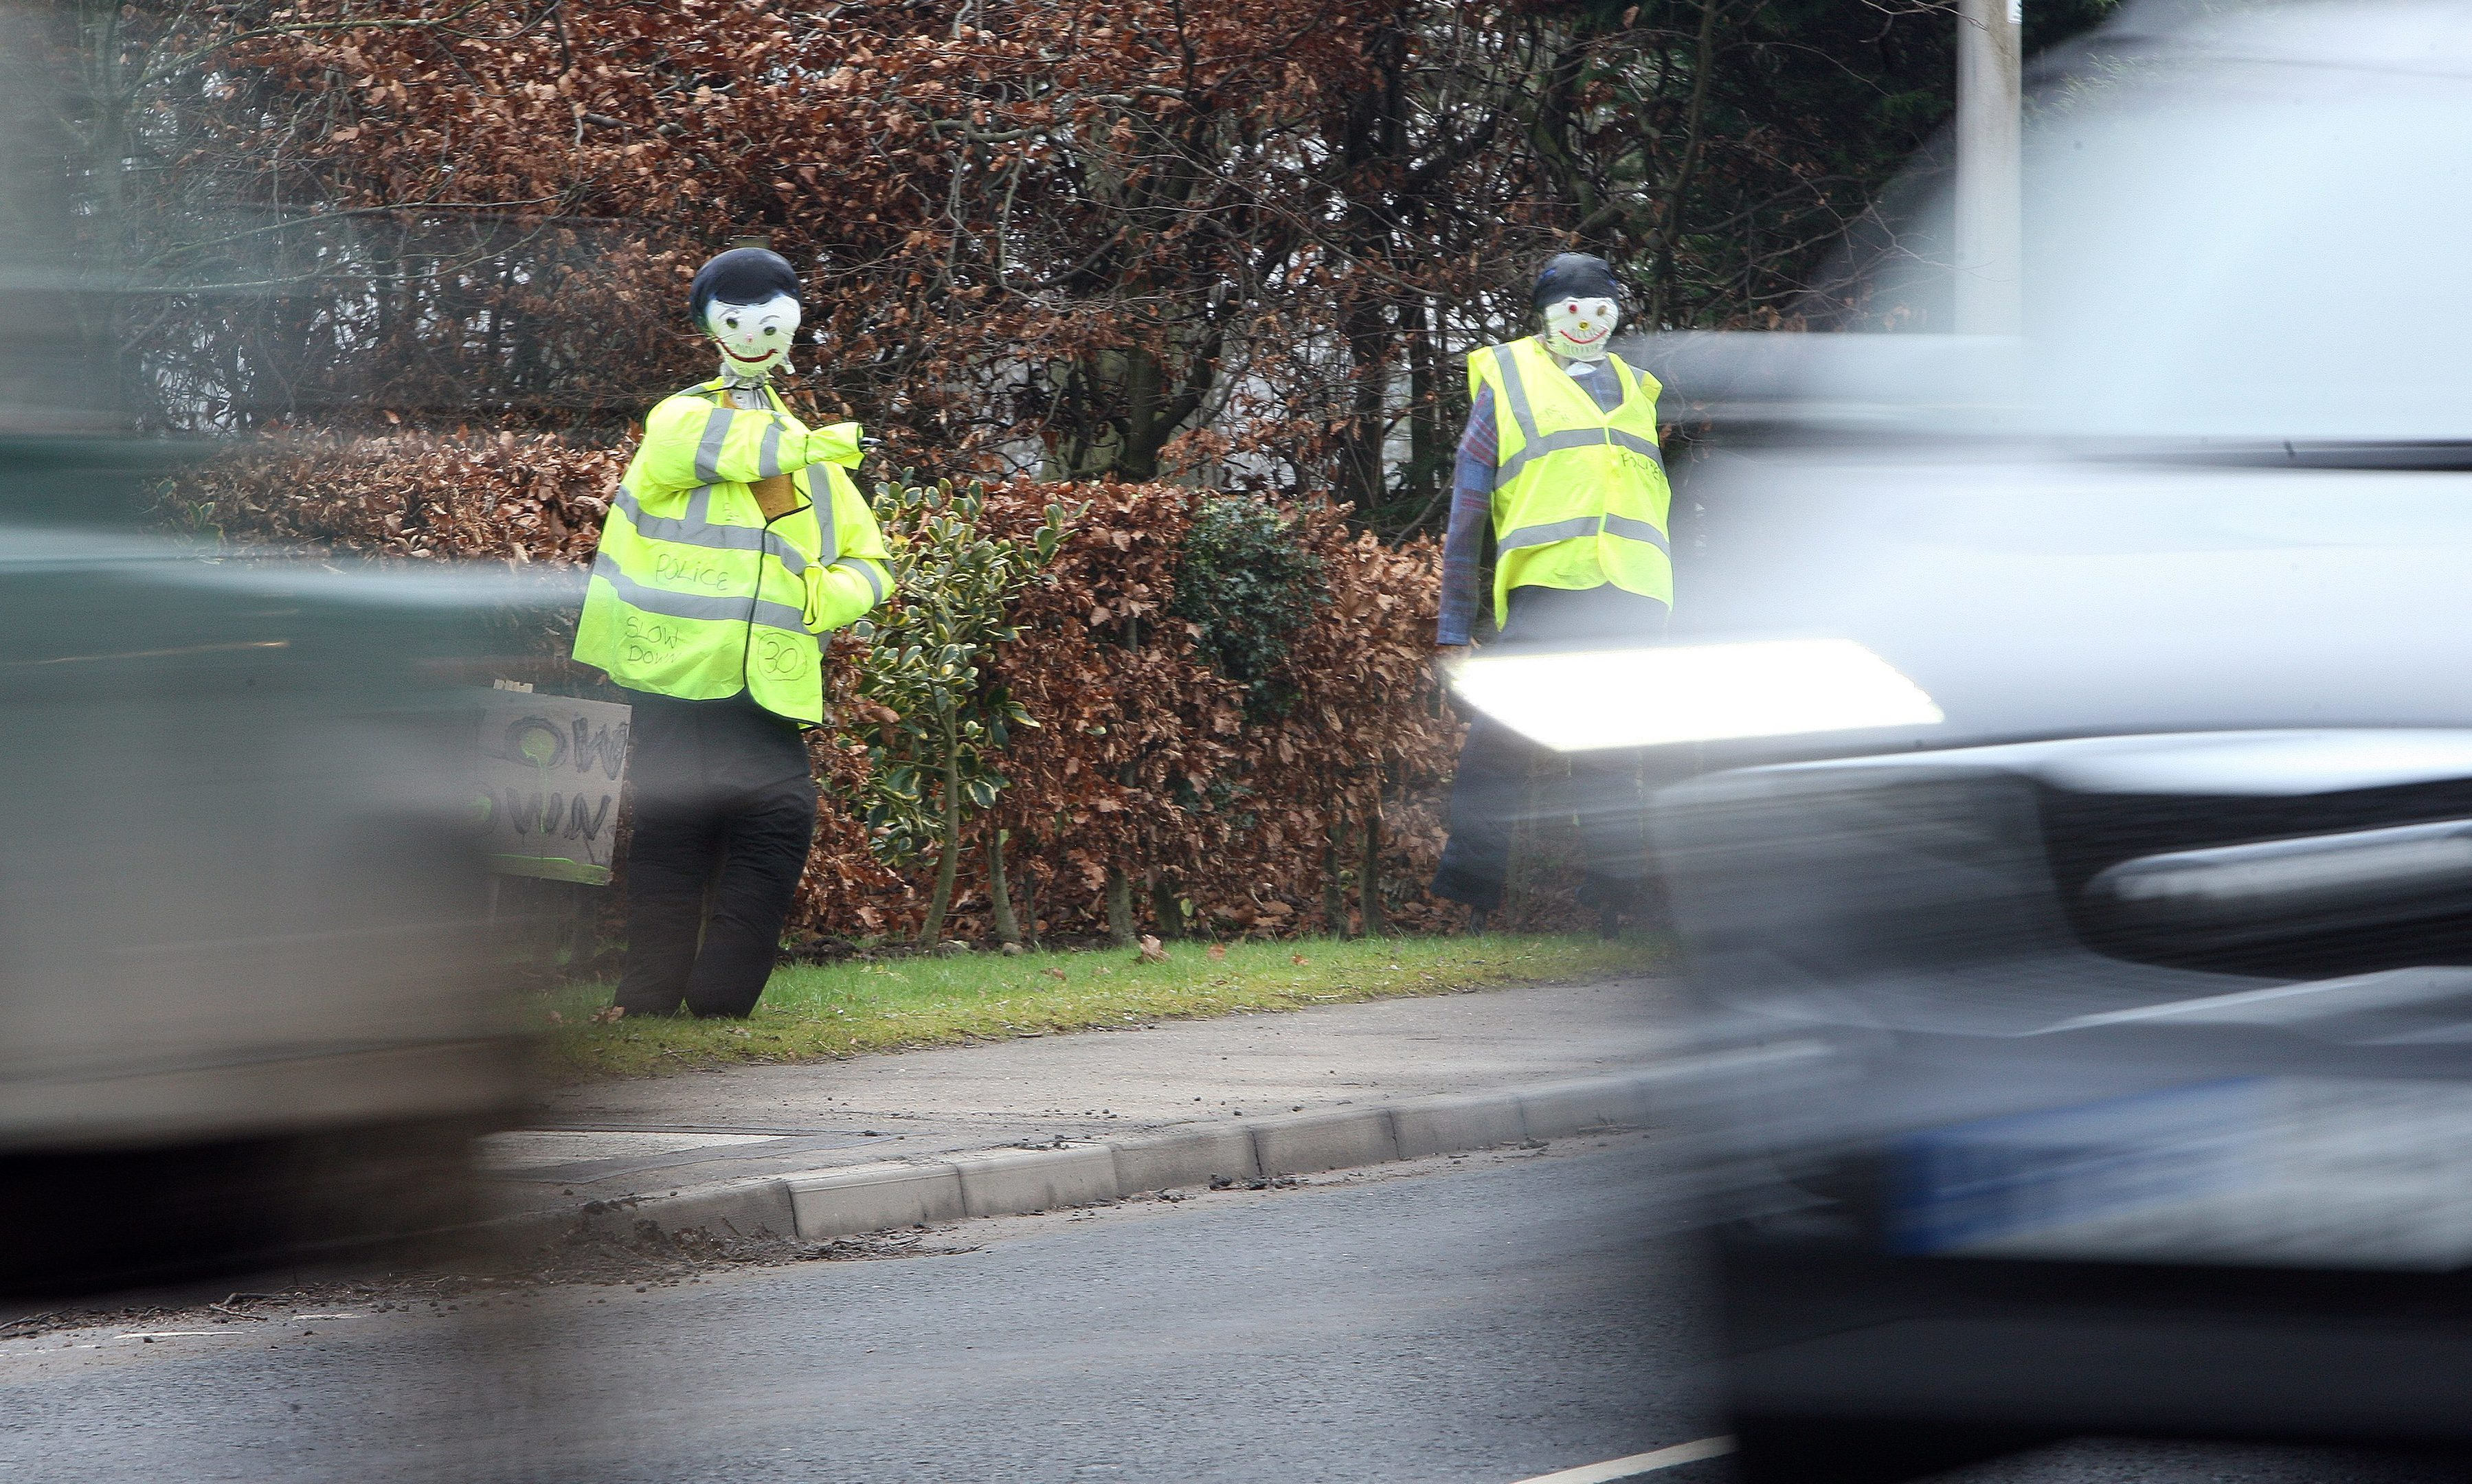 Scarecrow police were installed at the roadside in Coupar Angus.